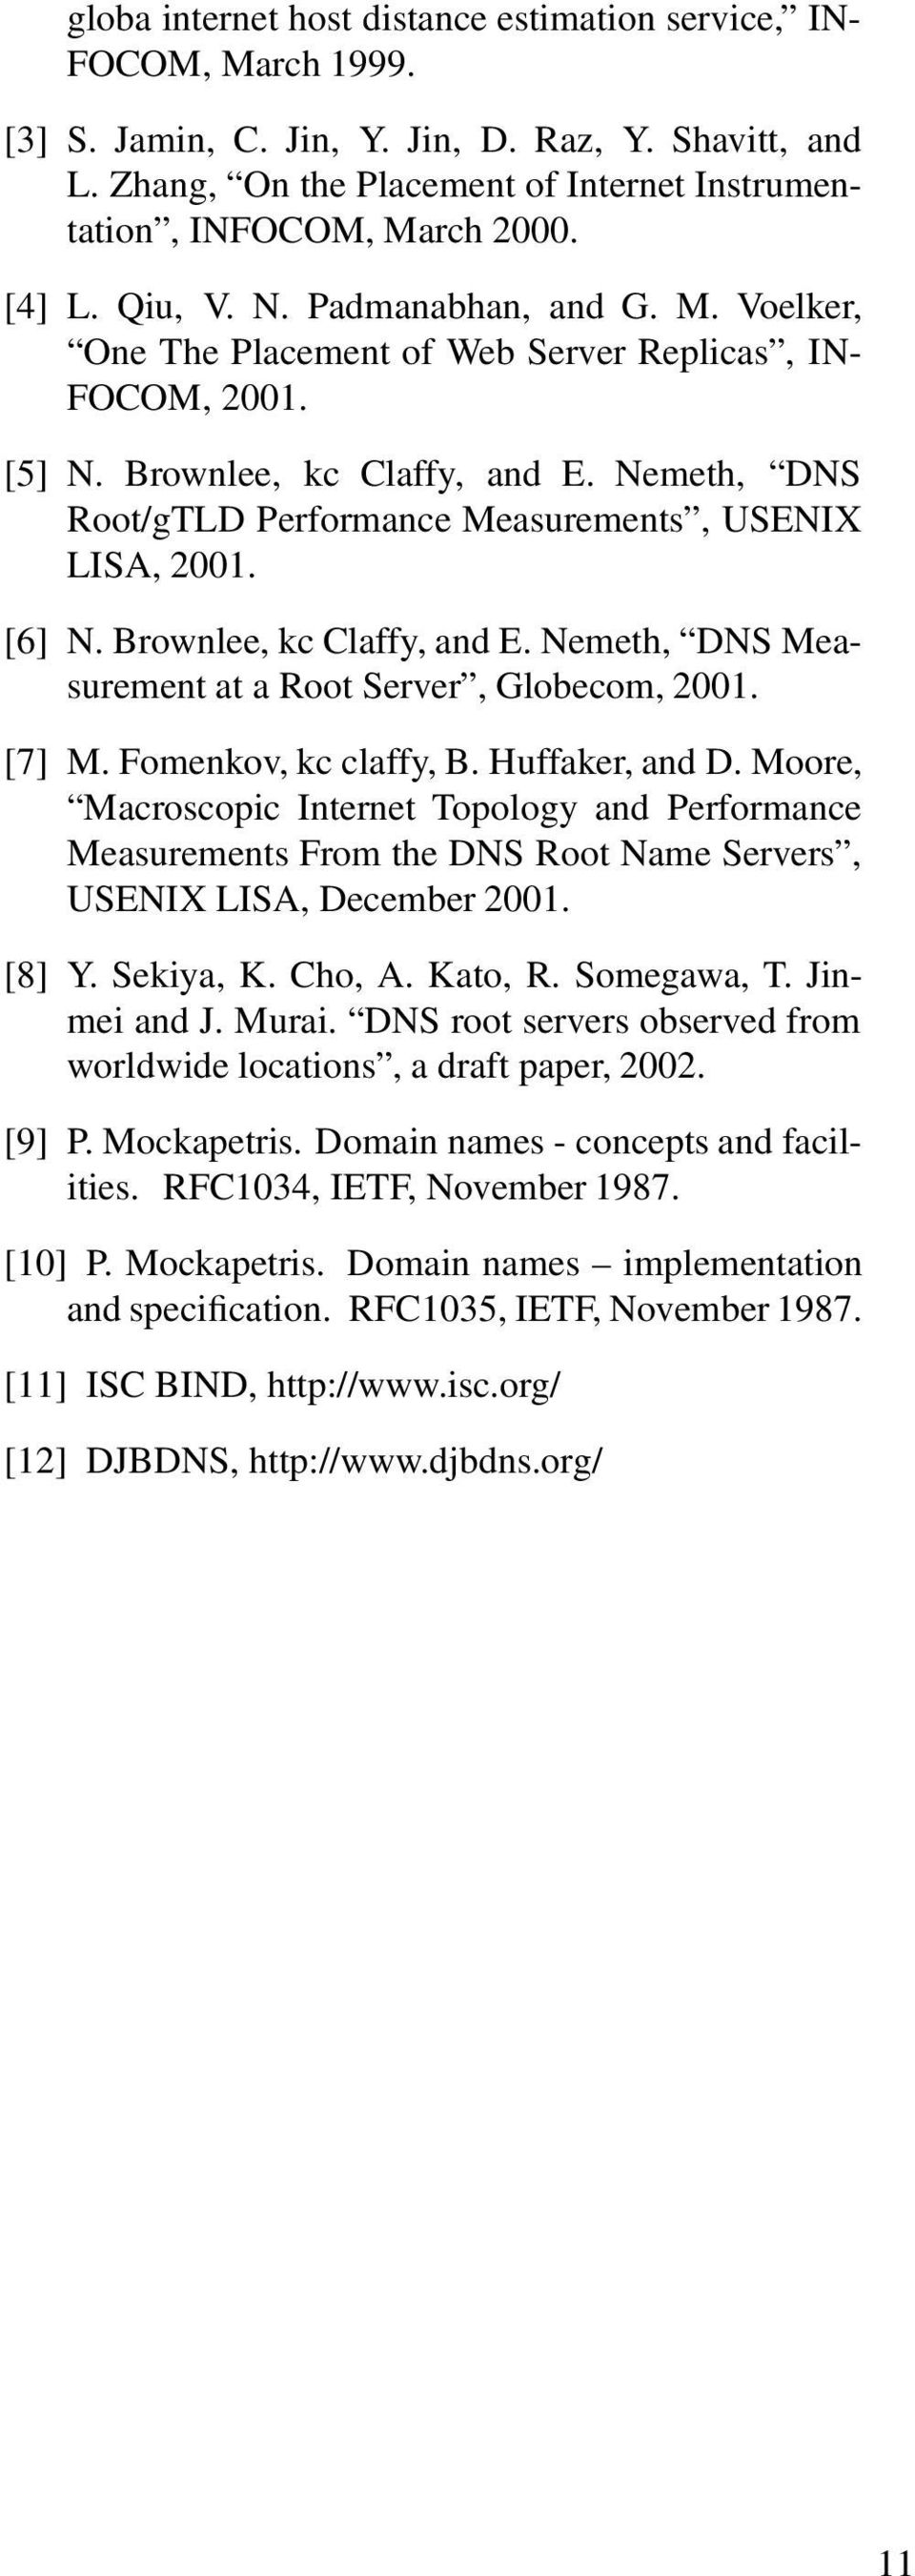 Brownlee, kc Claffy, and E. Nemeth, DNS Root/gTLD Performance Measurements, USENIX LISA, 2001. [6] N. Brownlee, kc Claffy, and E. Nemeth, DNS Measurement at a Root Server, Globecom, 2001. [7] M.